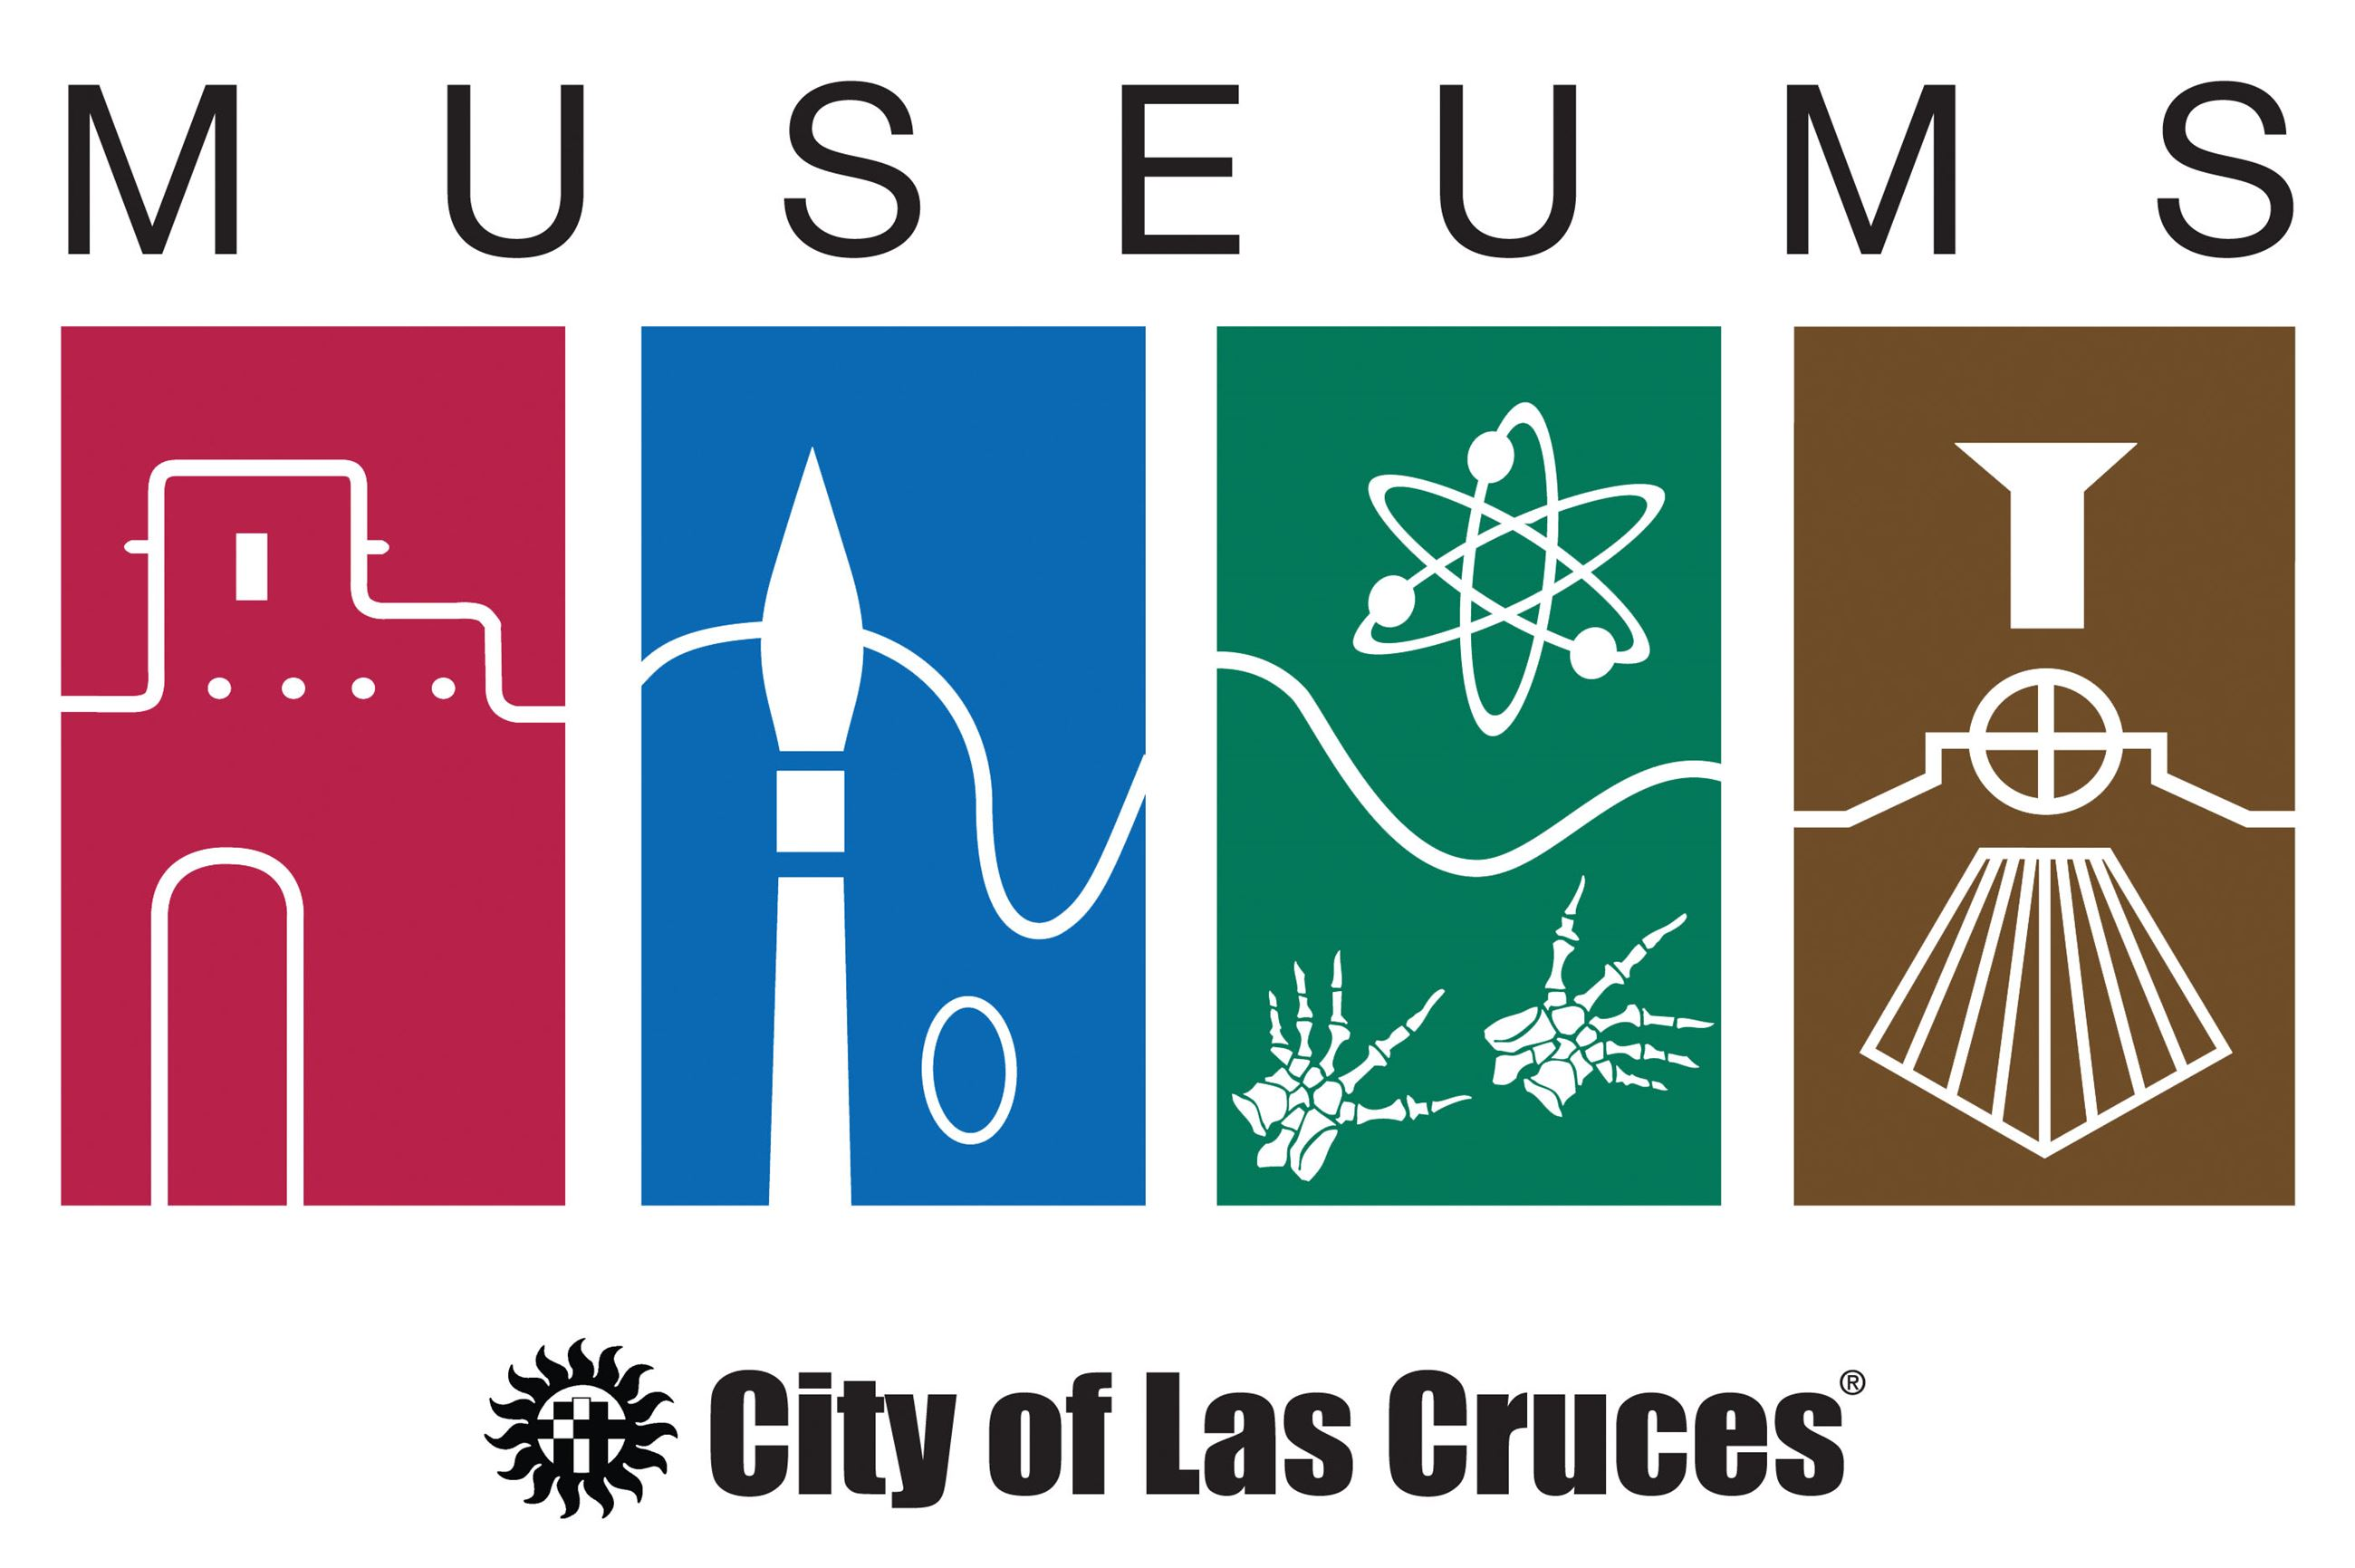 Museum system logo consist of four boxes in red, blue, green and brown